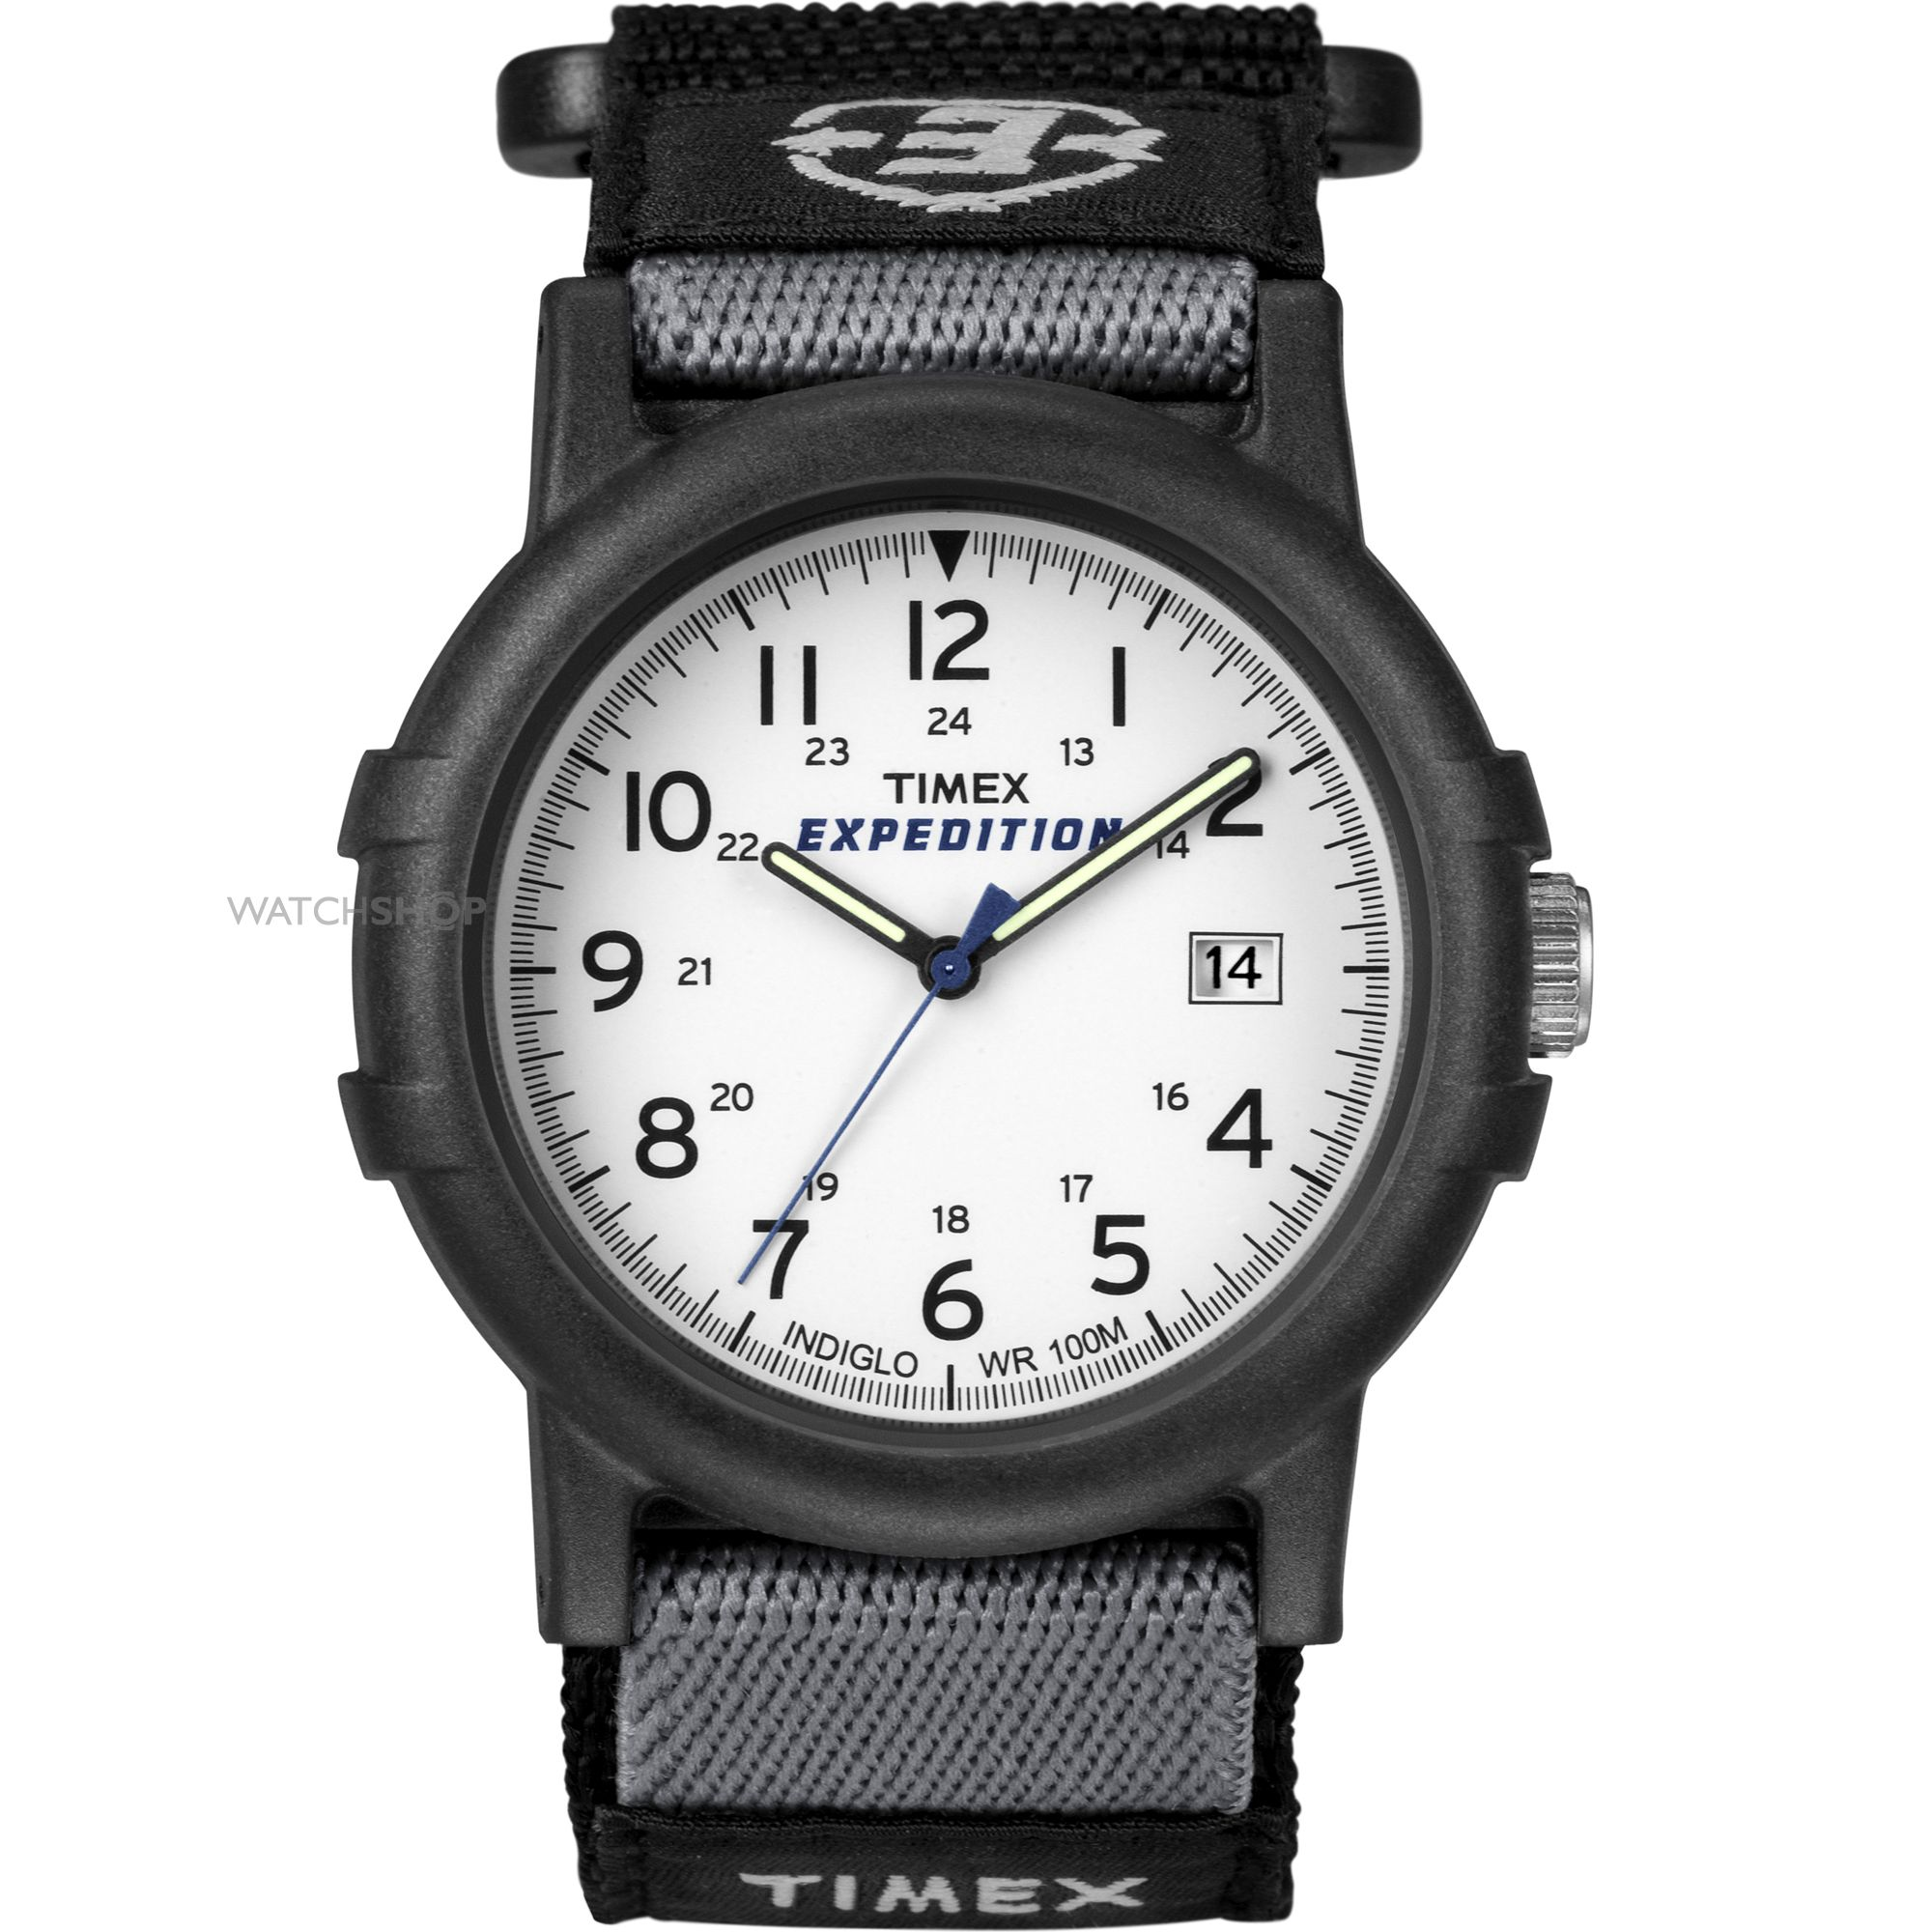 В» Men's Watches В» Timex Watches В» Timex Men's Expedition